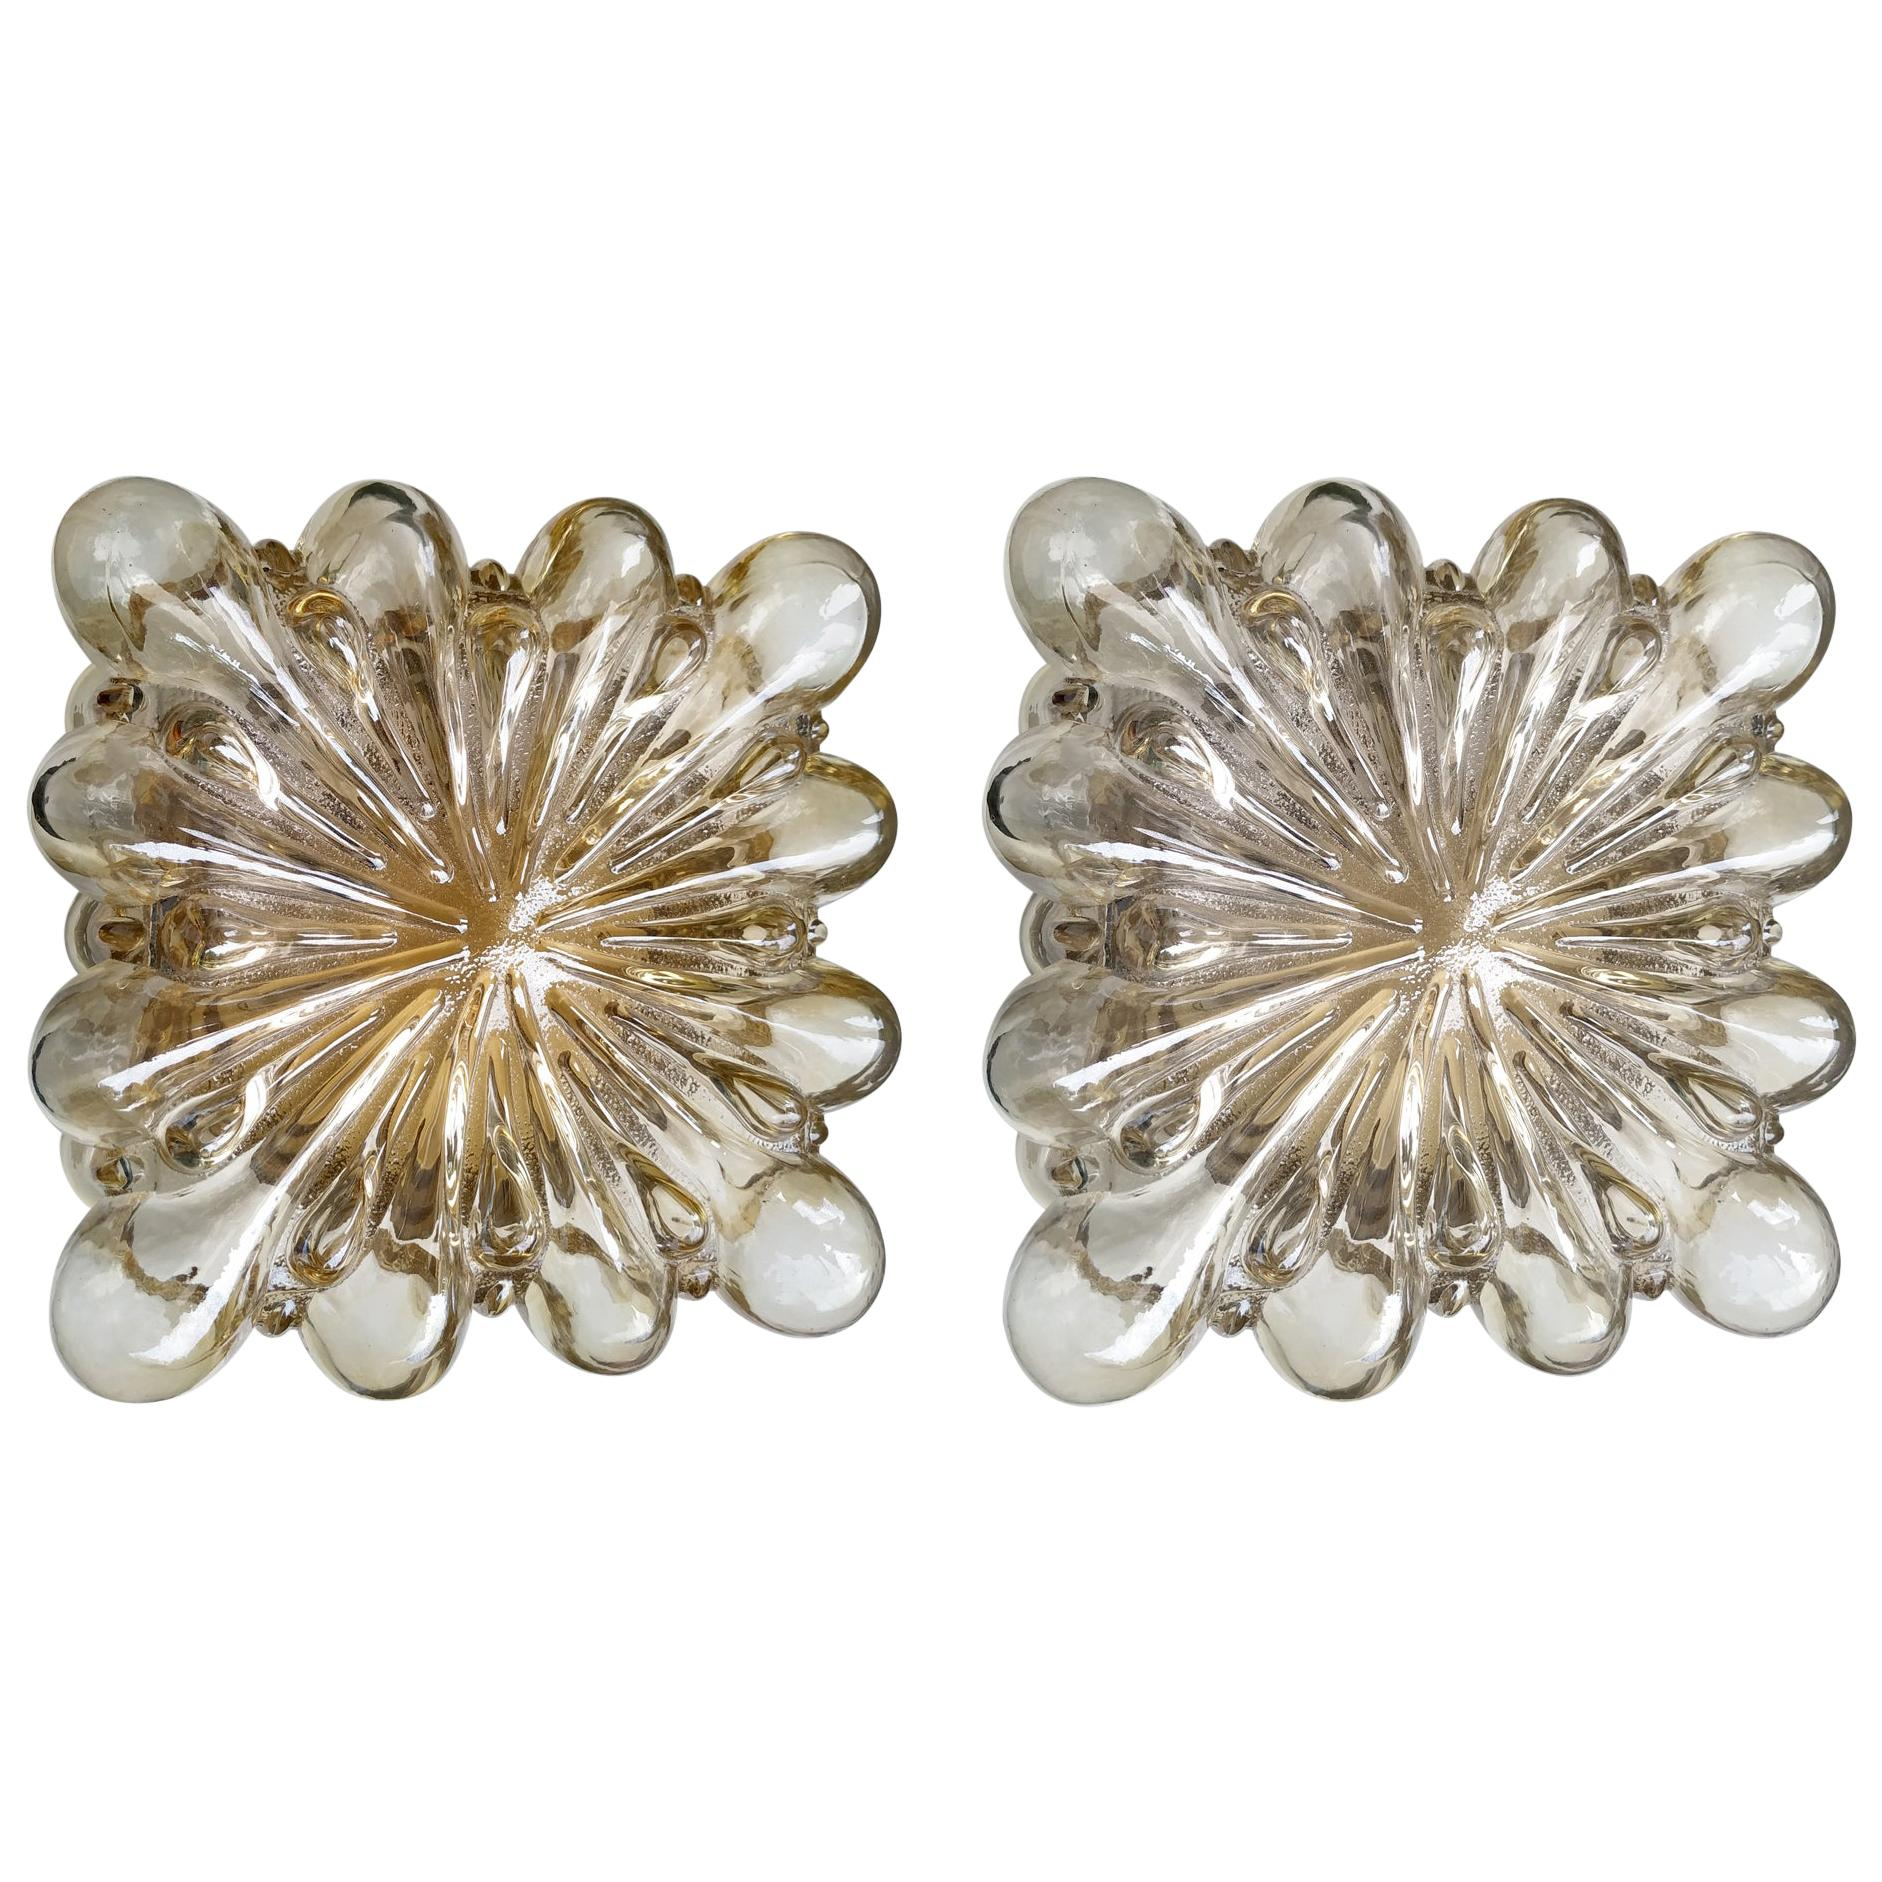 Two German Vintage Amber Glass Ceiling or Wall Lights Flushmounts, 1960s